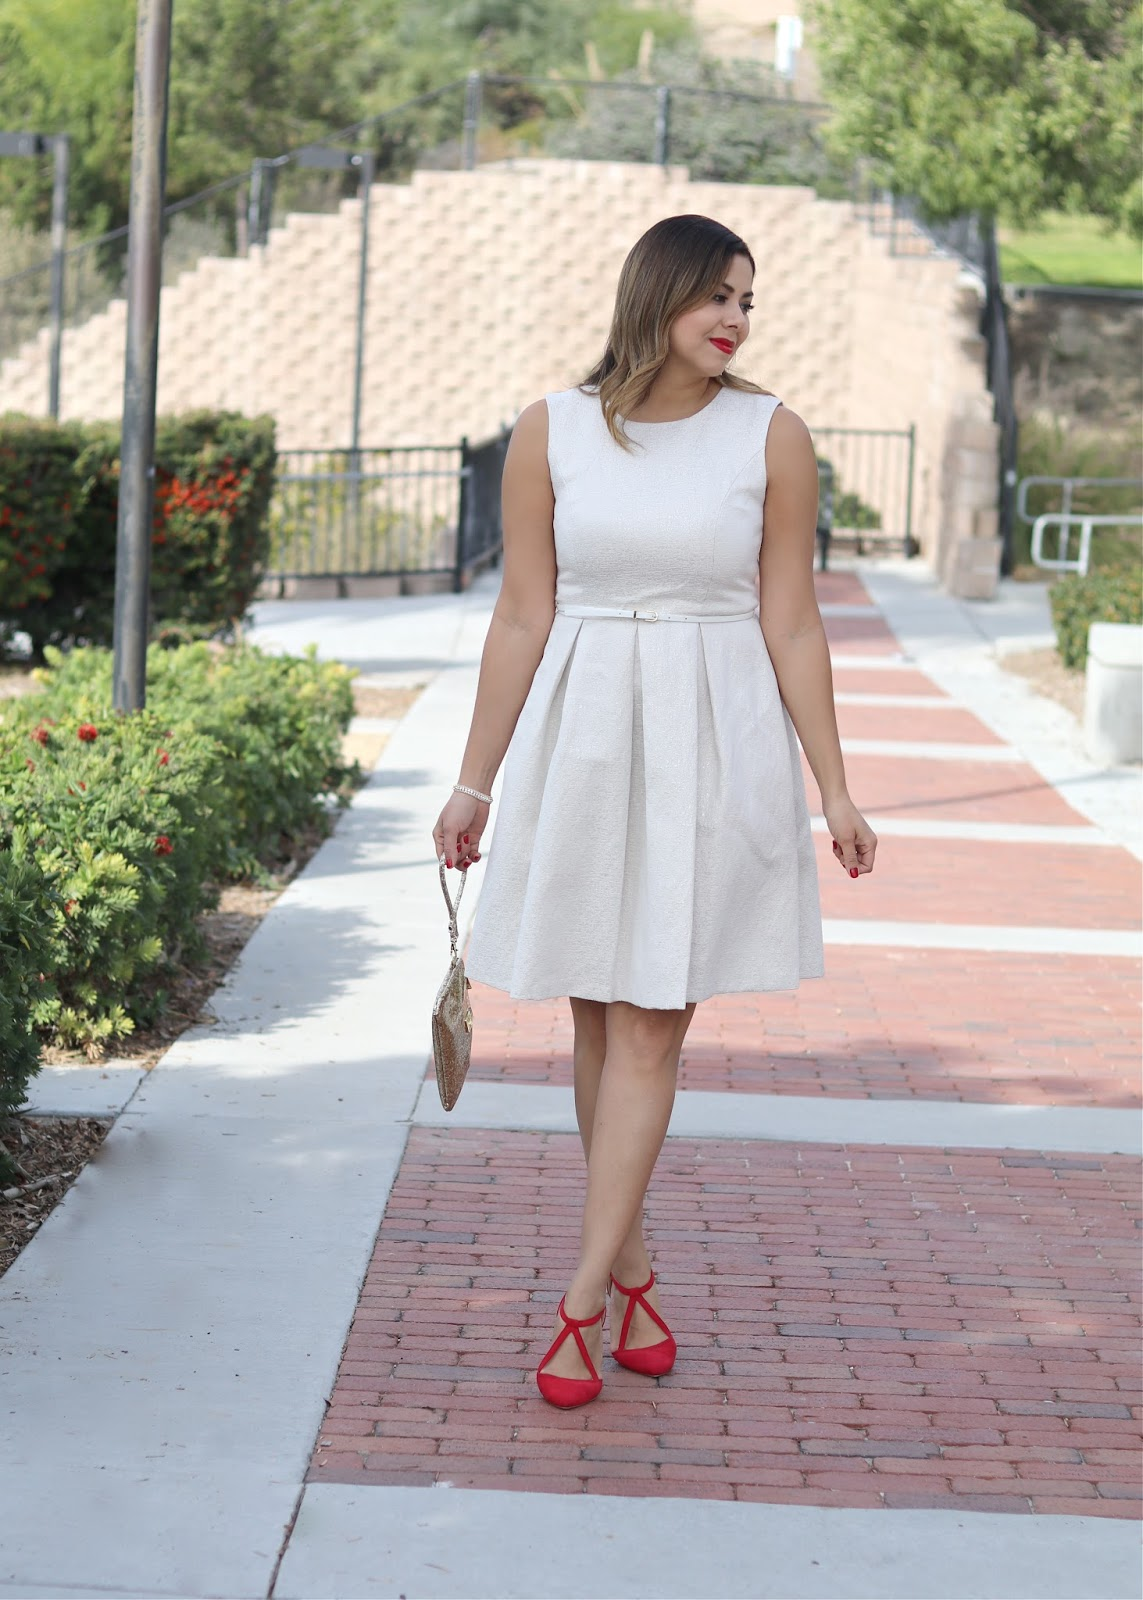 Red Lipstick and red shoes, sparkly earrings, latina fashion blogger